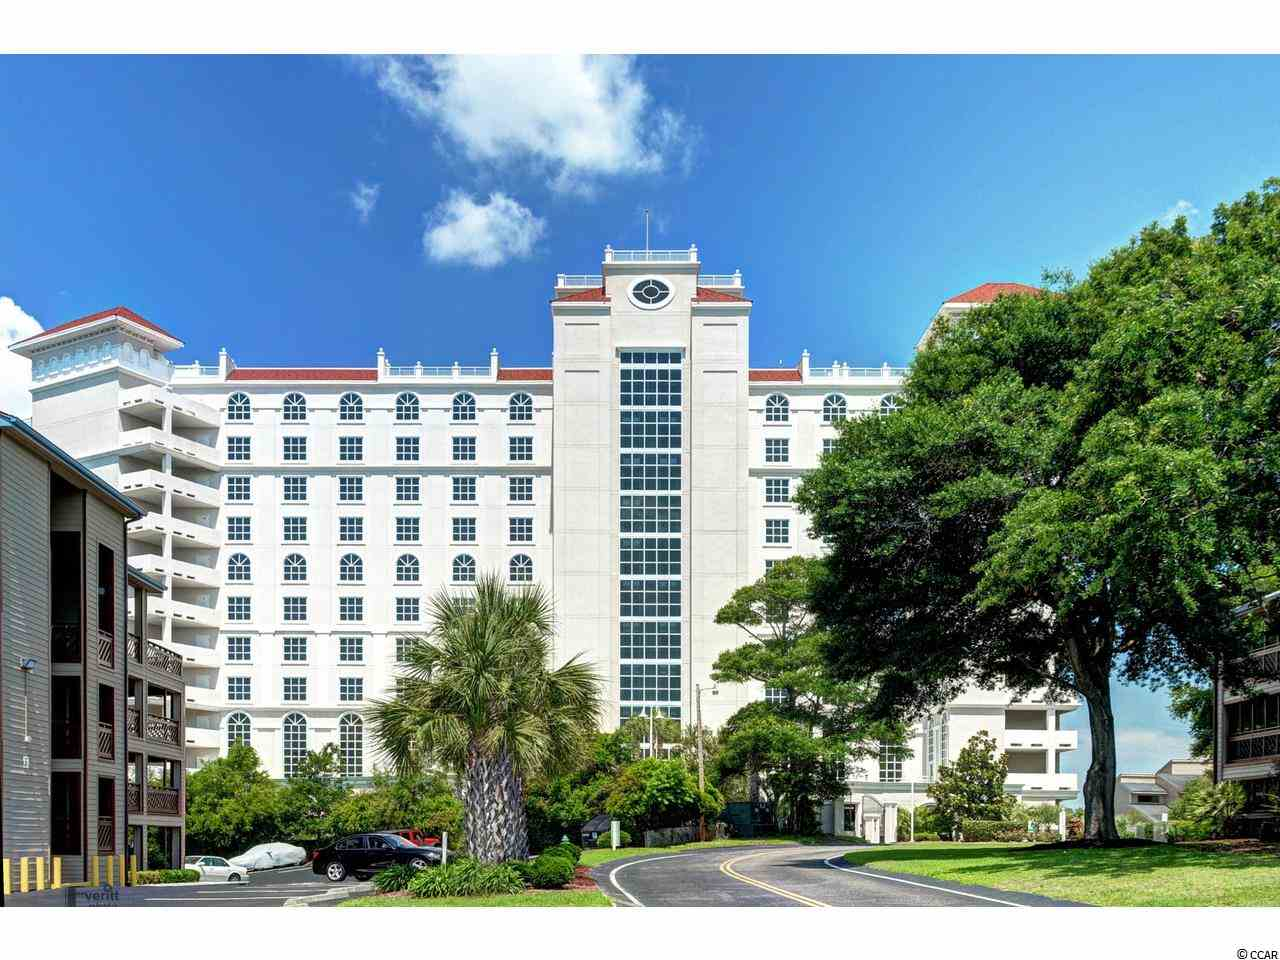 The pointe mb condos for sale in myrtle beach south carolina for 3 bedroom condo myrtle beach sc